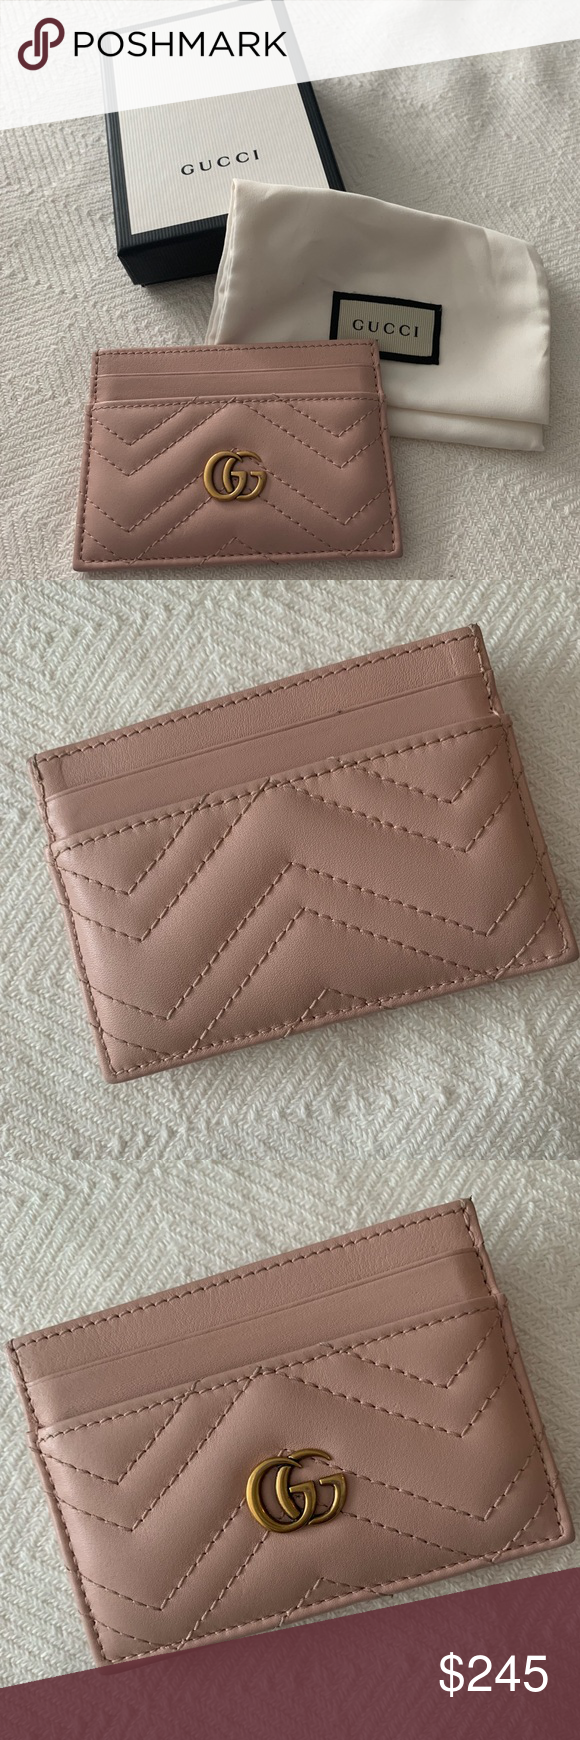 100% authentic b08f3 2c592 Gucci GG Marmont Leather Card Case - Pink GG Marmont card case made ...